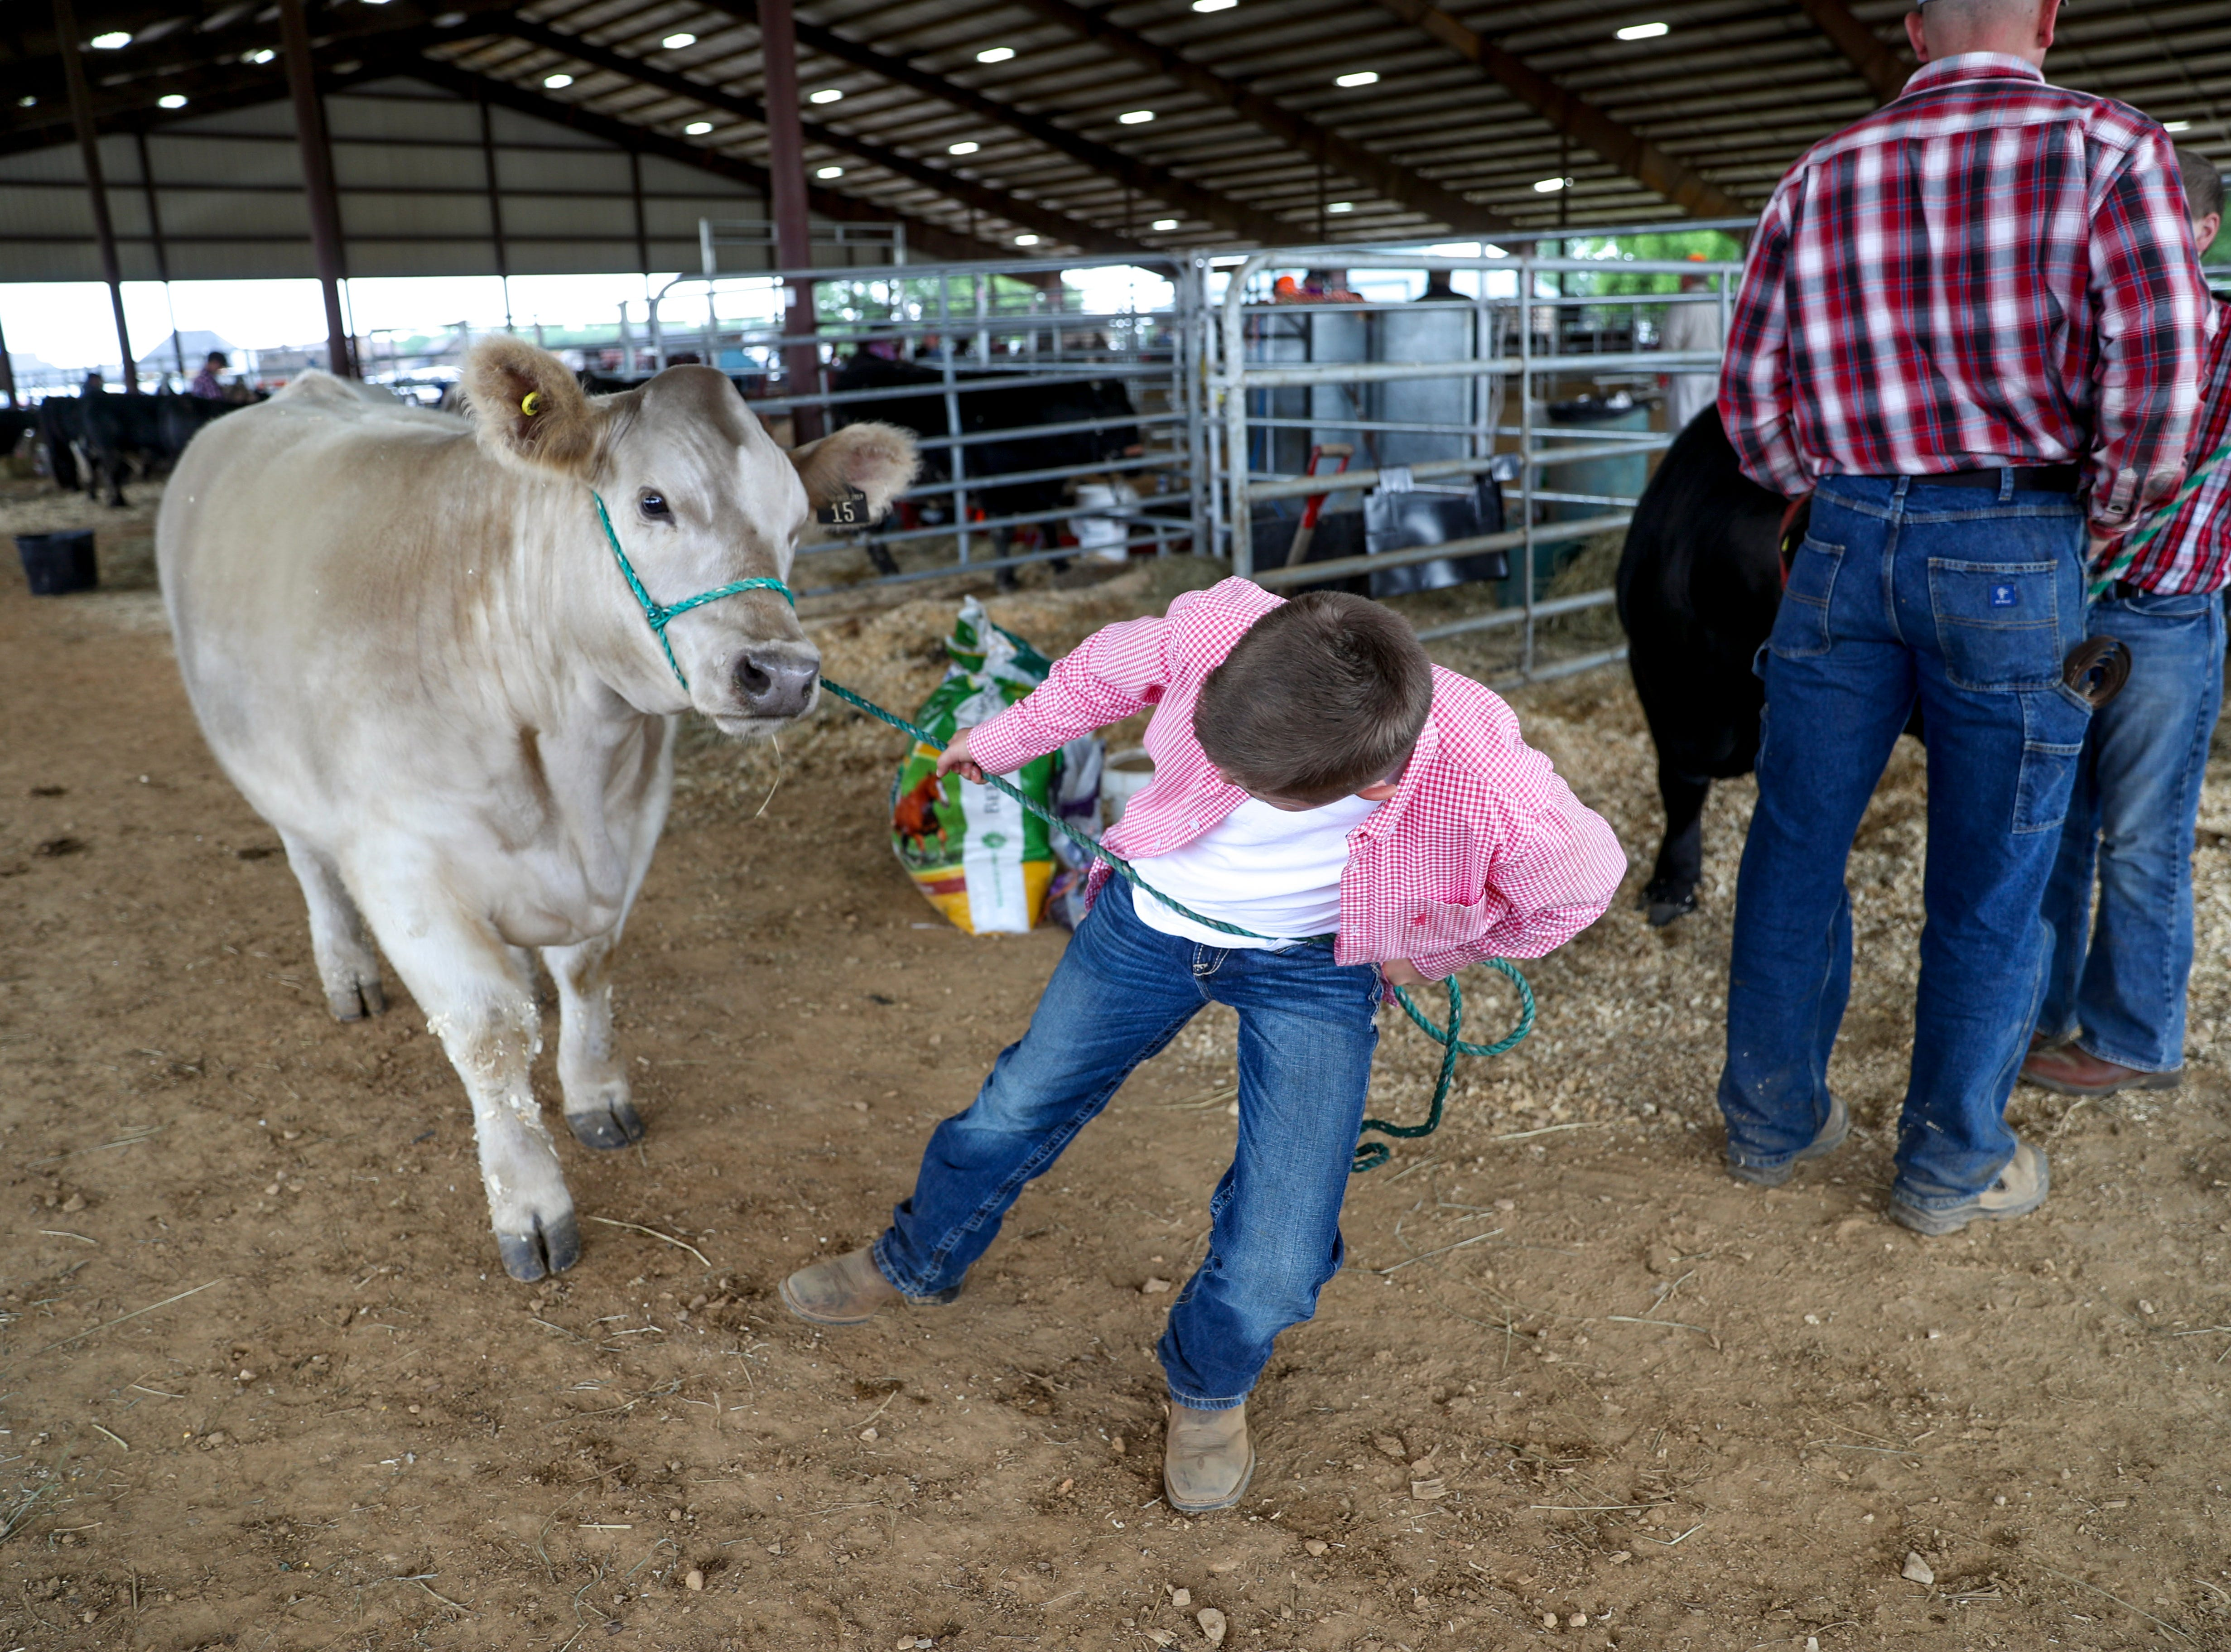 Mac Baggett tries to pull at his stubborn steer to get him to the auctioning area at the 69th annual Clarksville Area Junior Better Beef Show at the John Bartee Agricultural Center in Clarksville, Tenn., on Tuesday, May 14, 2019.